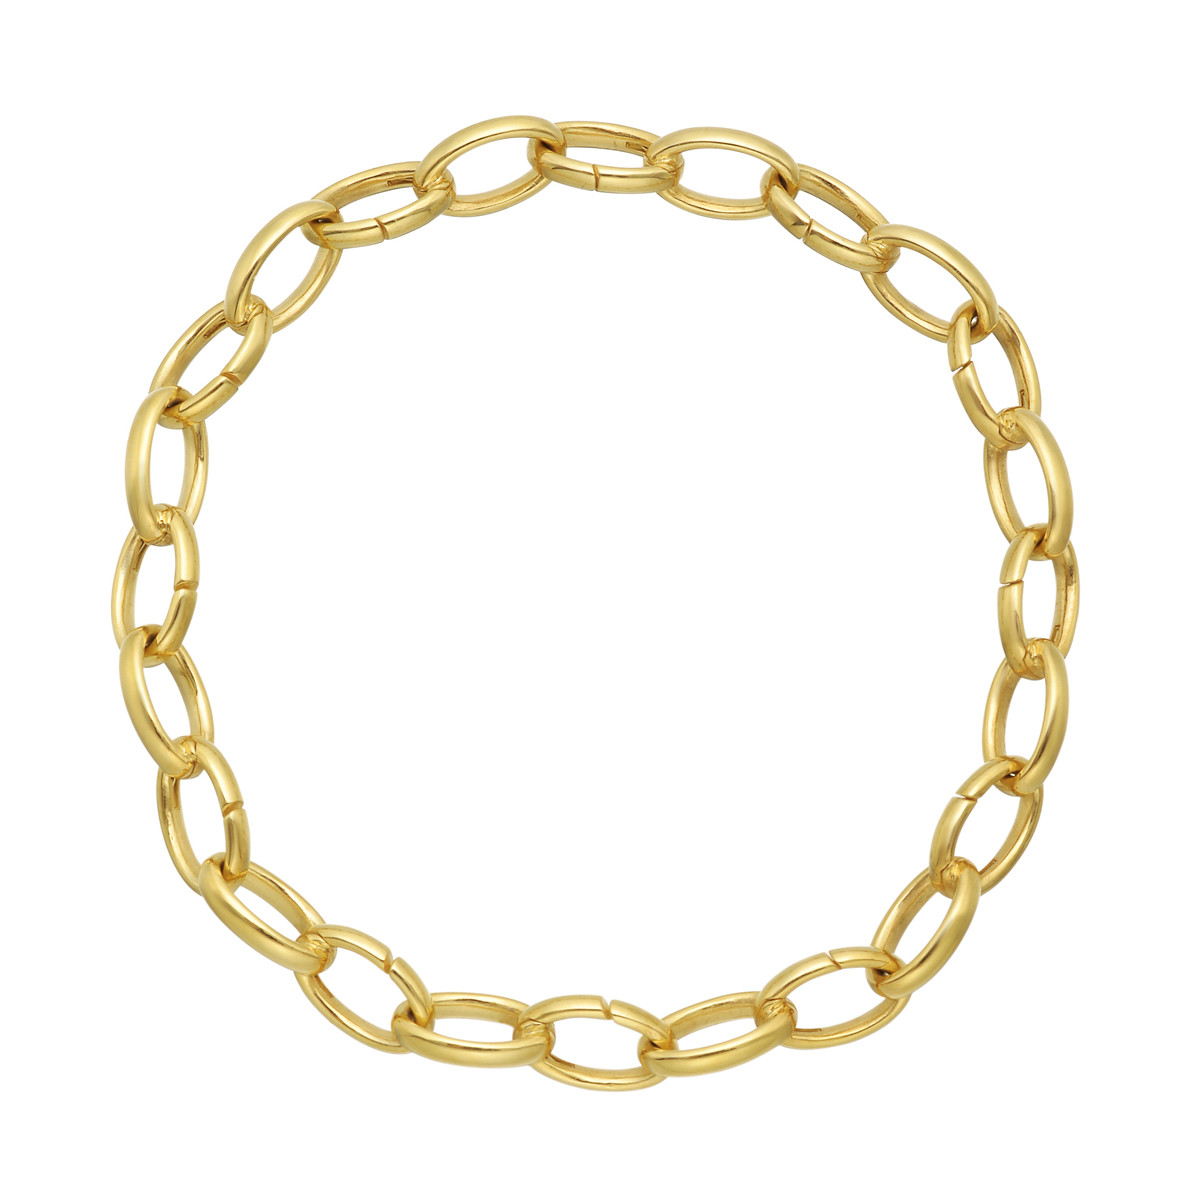 18k Yellow Gold Oval Link Adjustable Bracelet